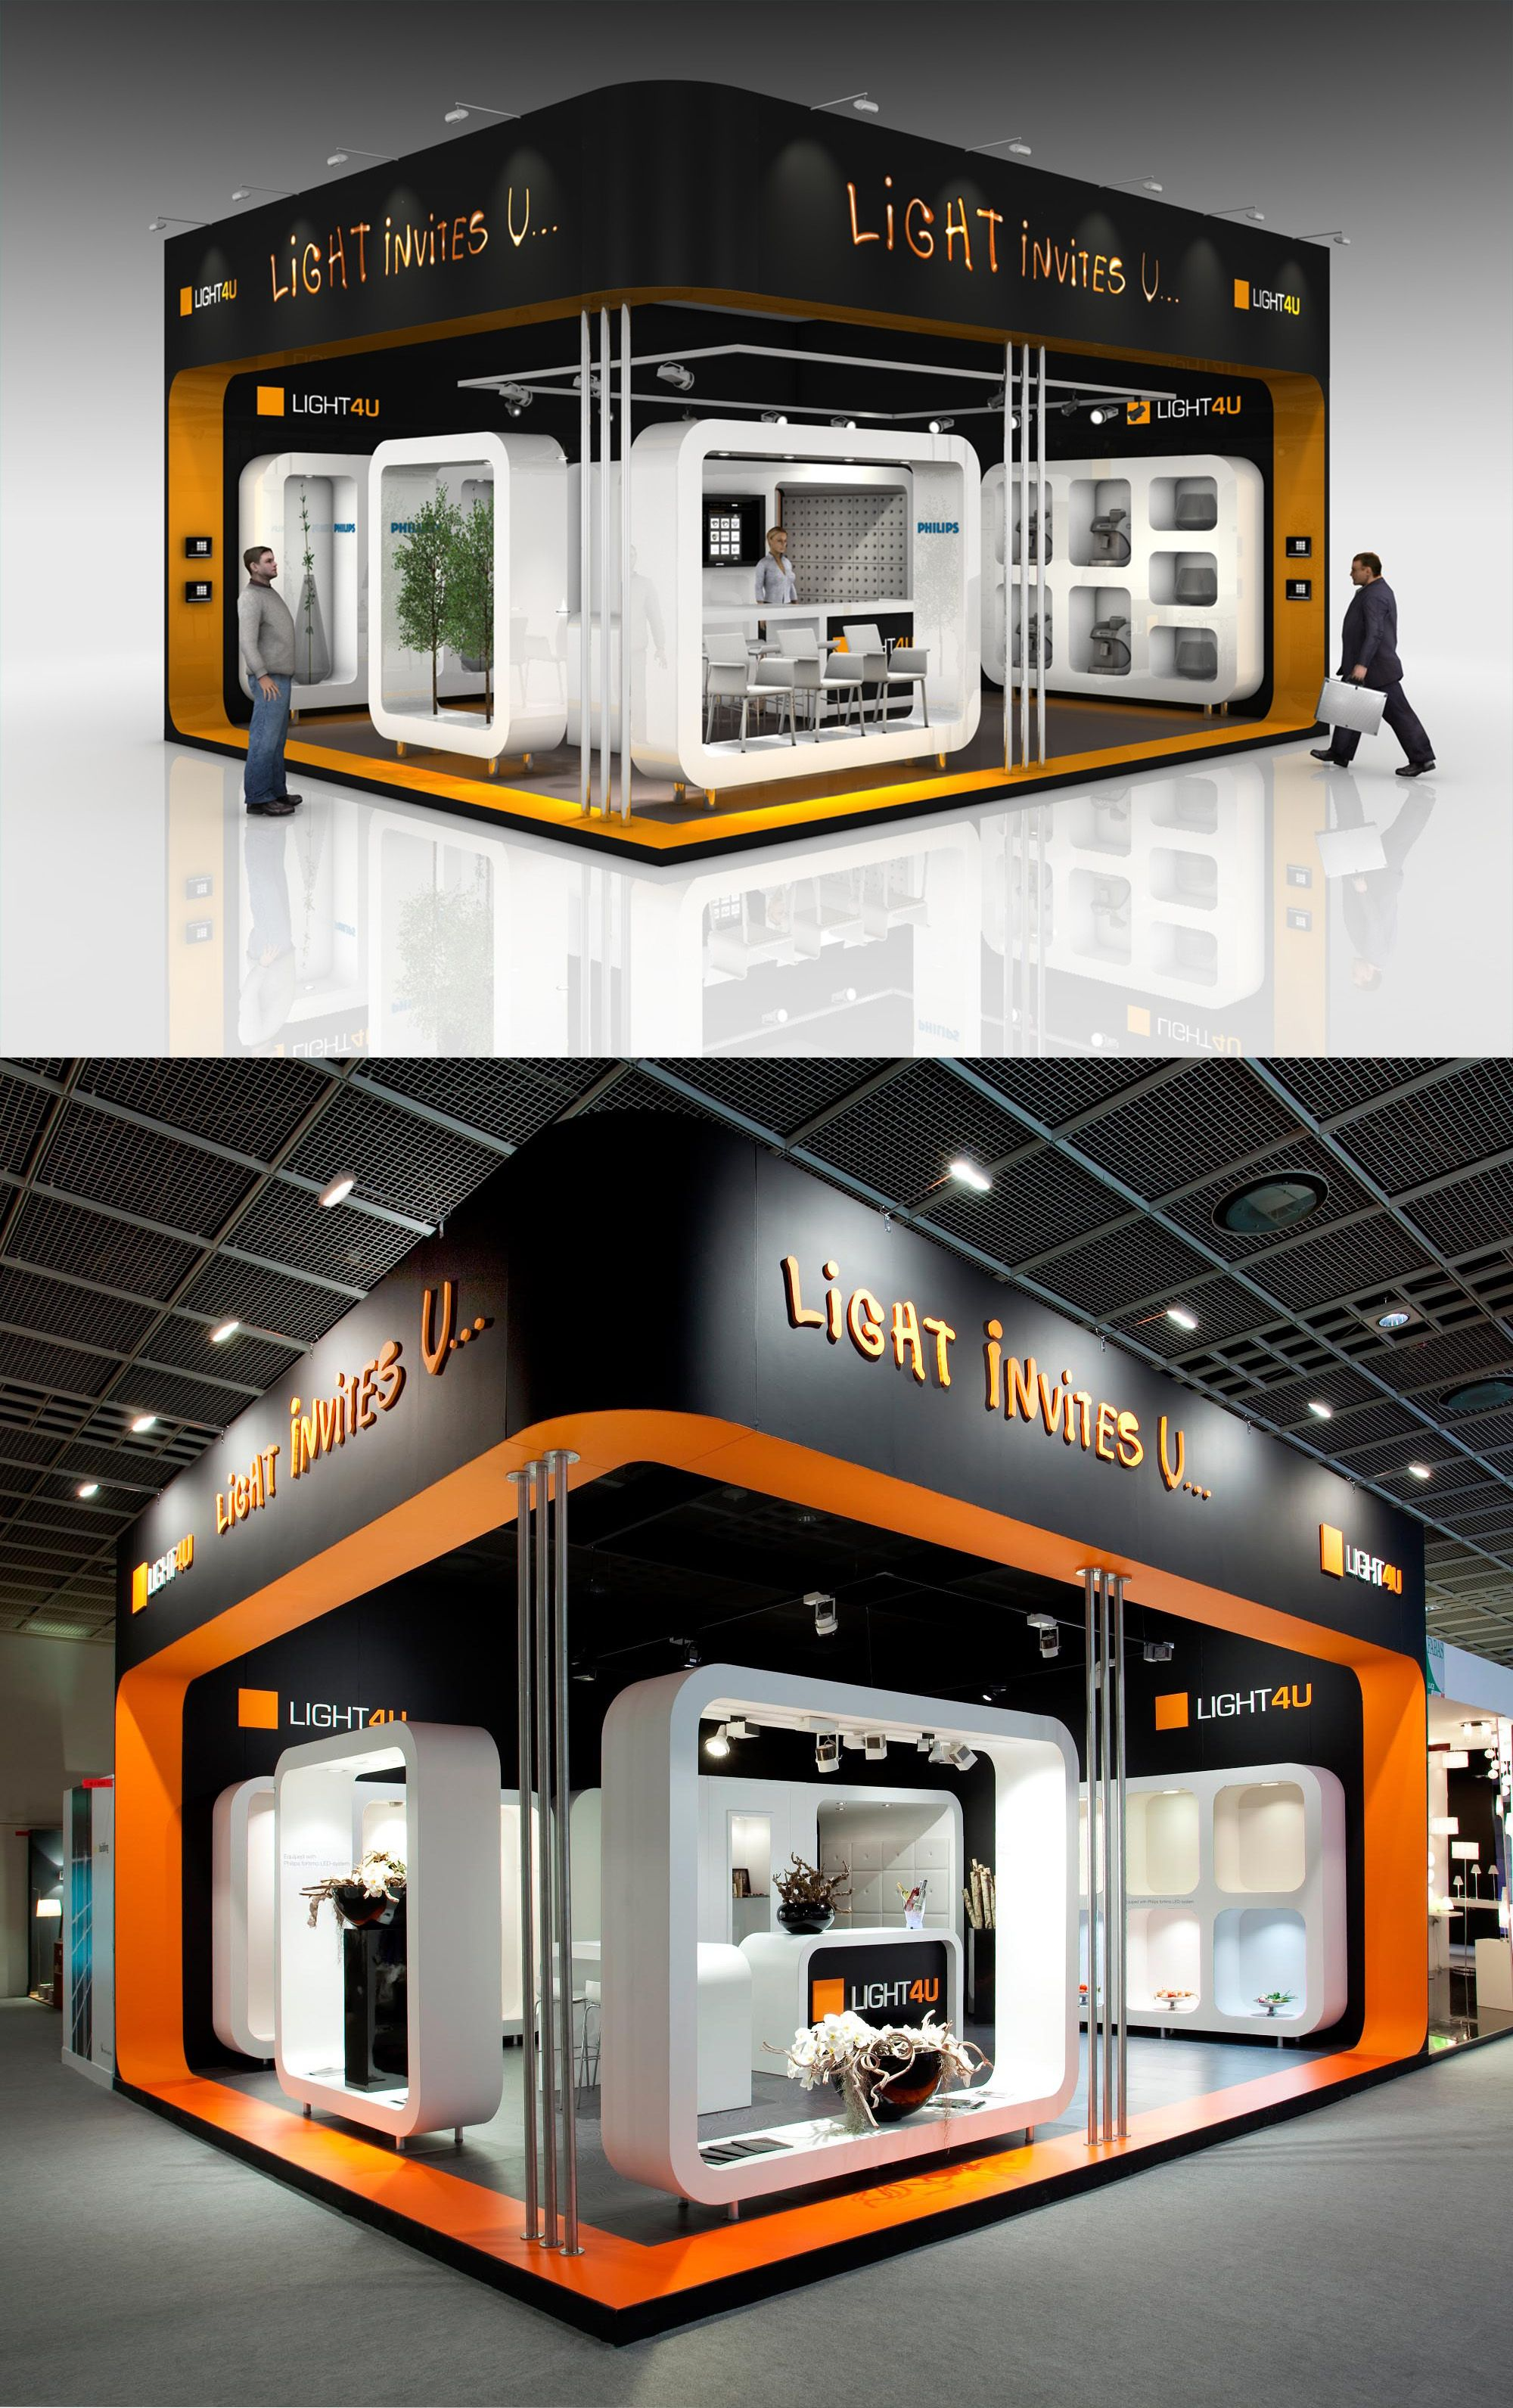 Exhibition Stall Lights : Exhibition stand design from the inside stand building at light